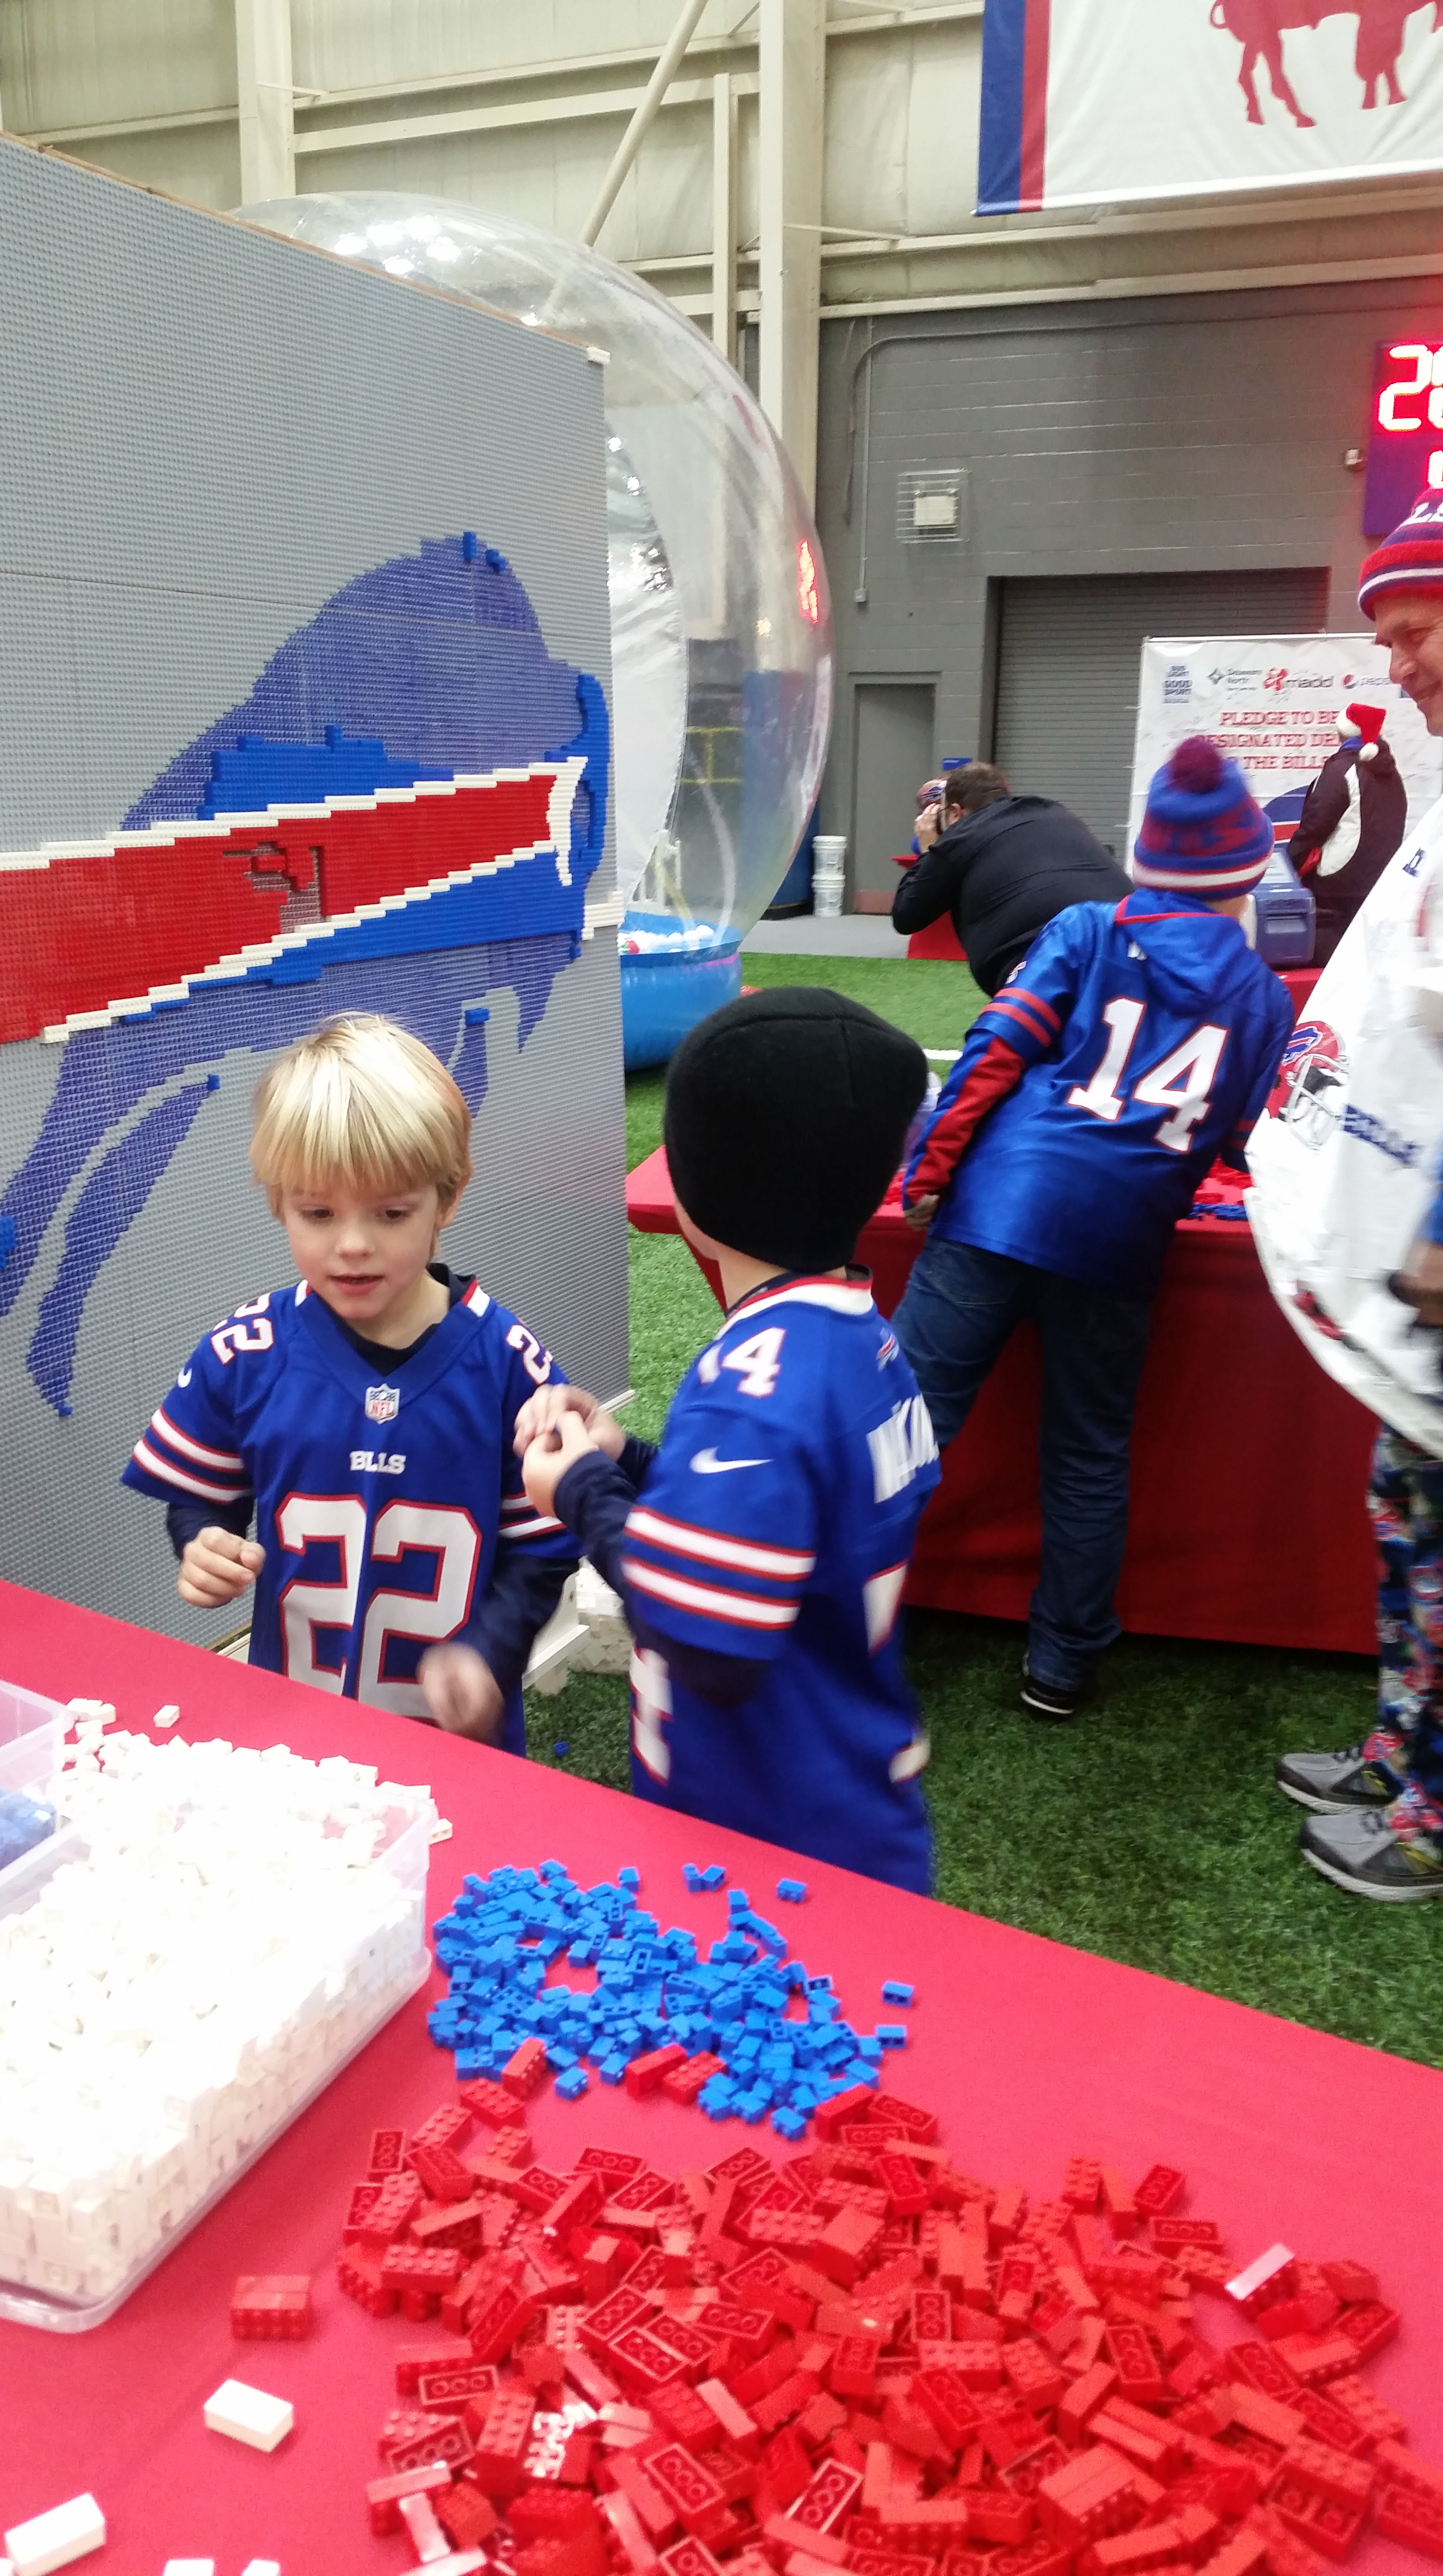 Fans Commemorate The Nfl Season With Buffalo Bills Lego Build